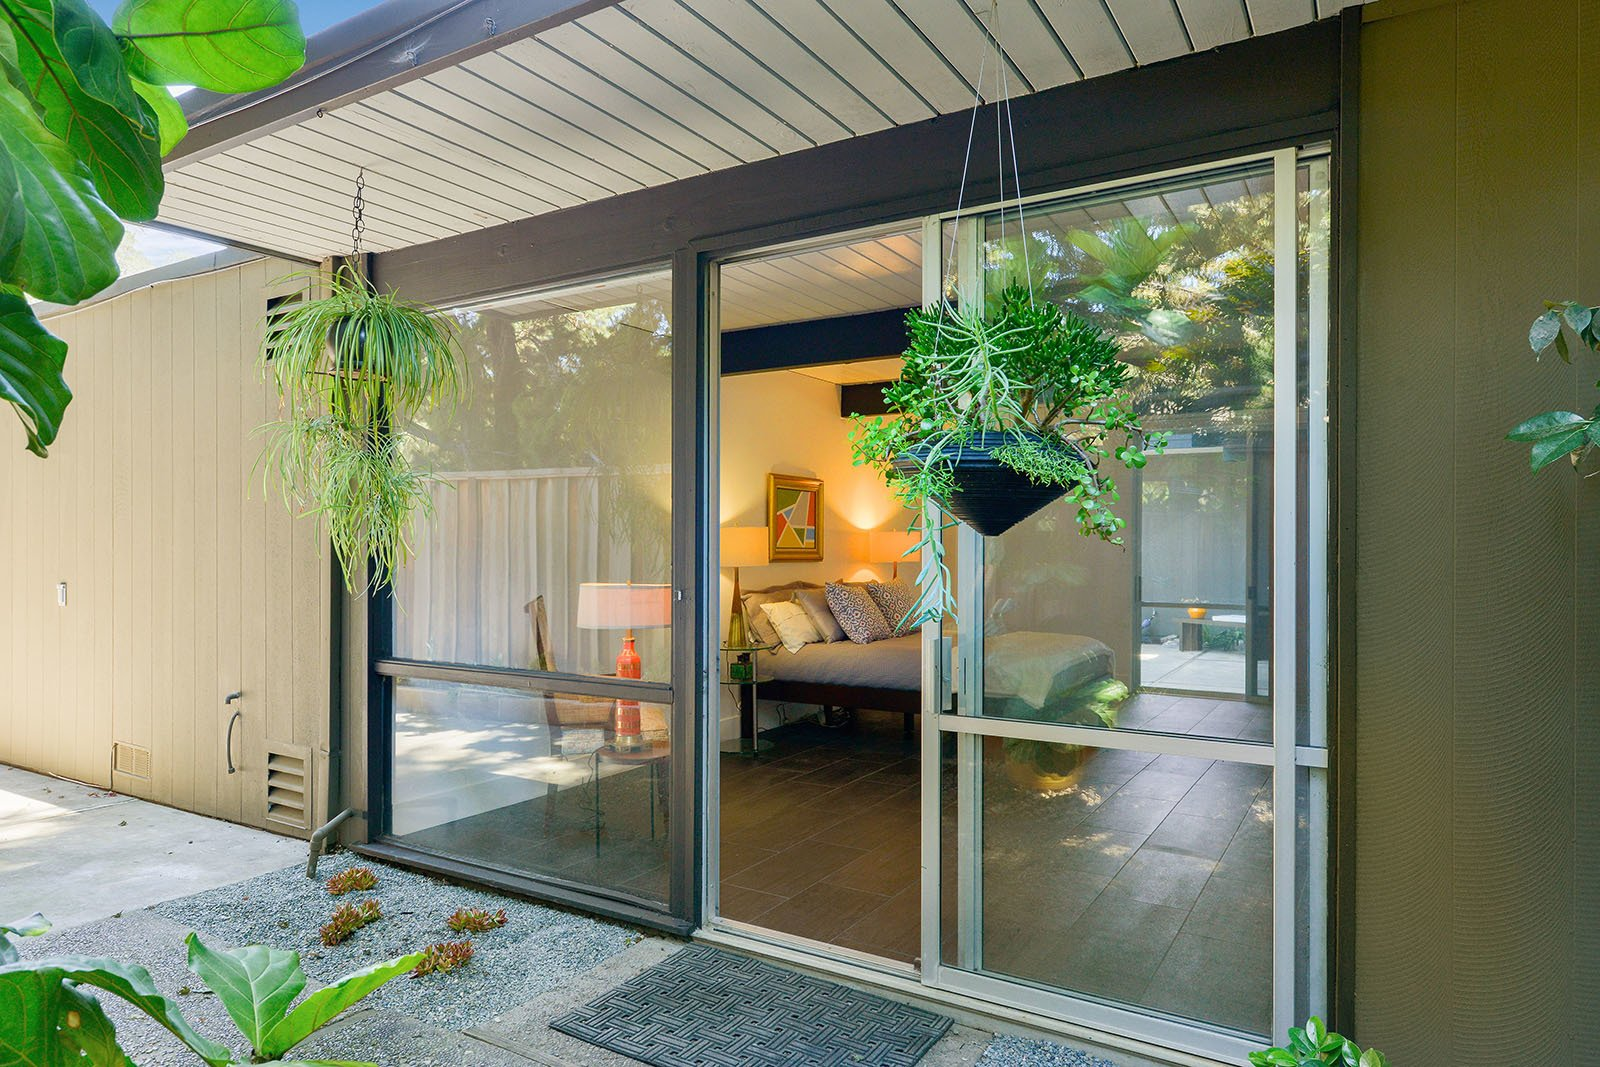 Photo 12 of 15 in An Enormous Bay Area Eichler Asks $1.45M